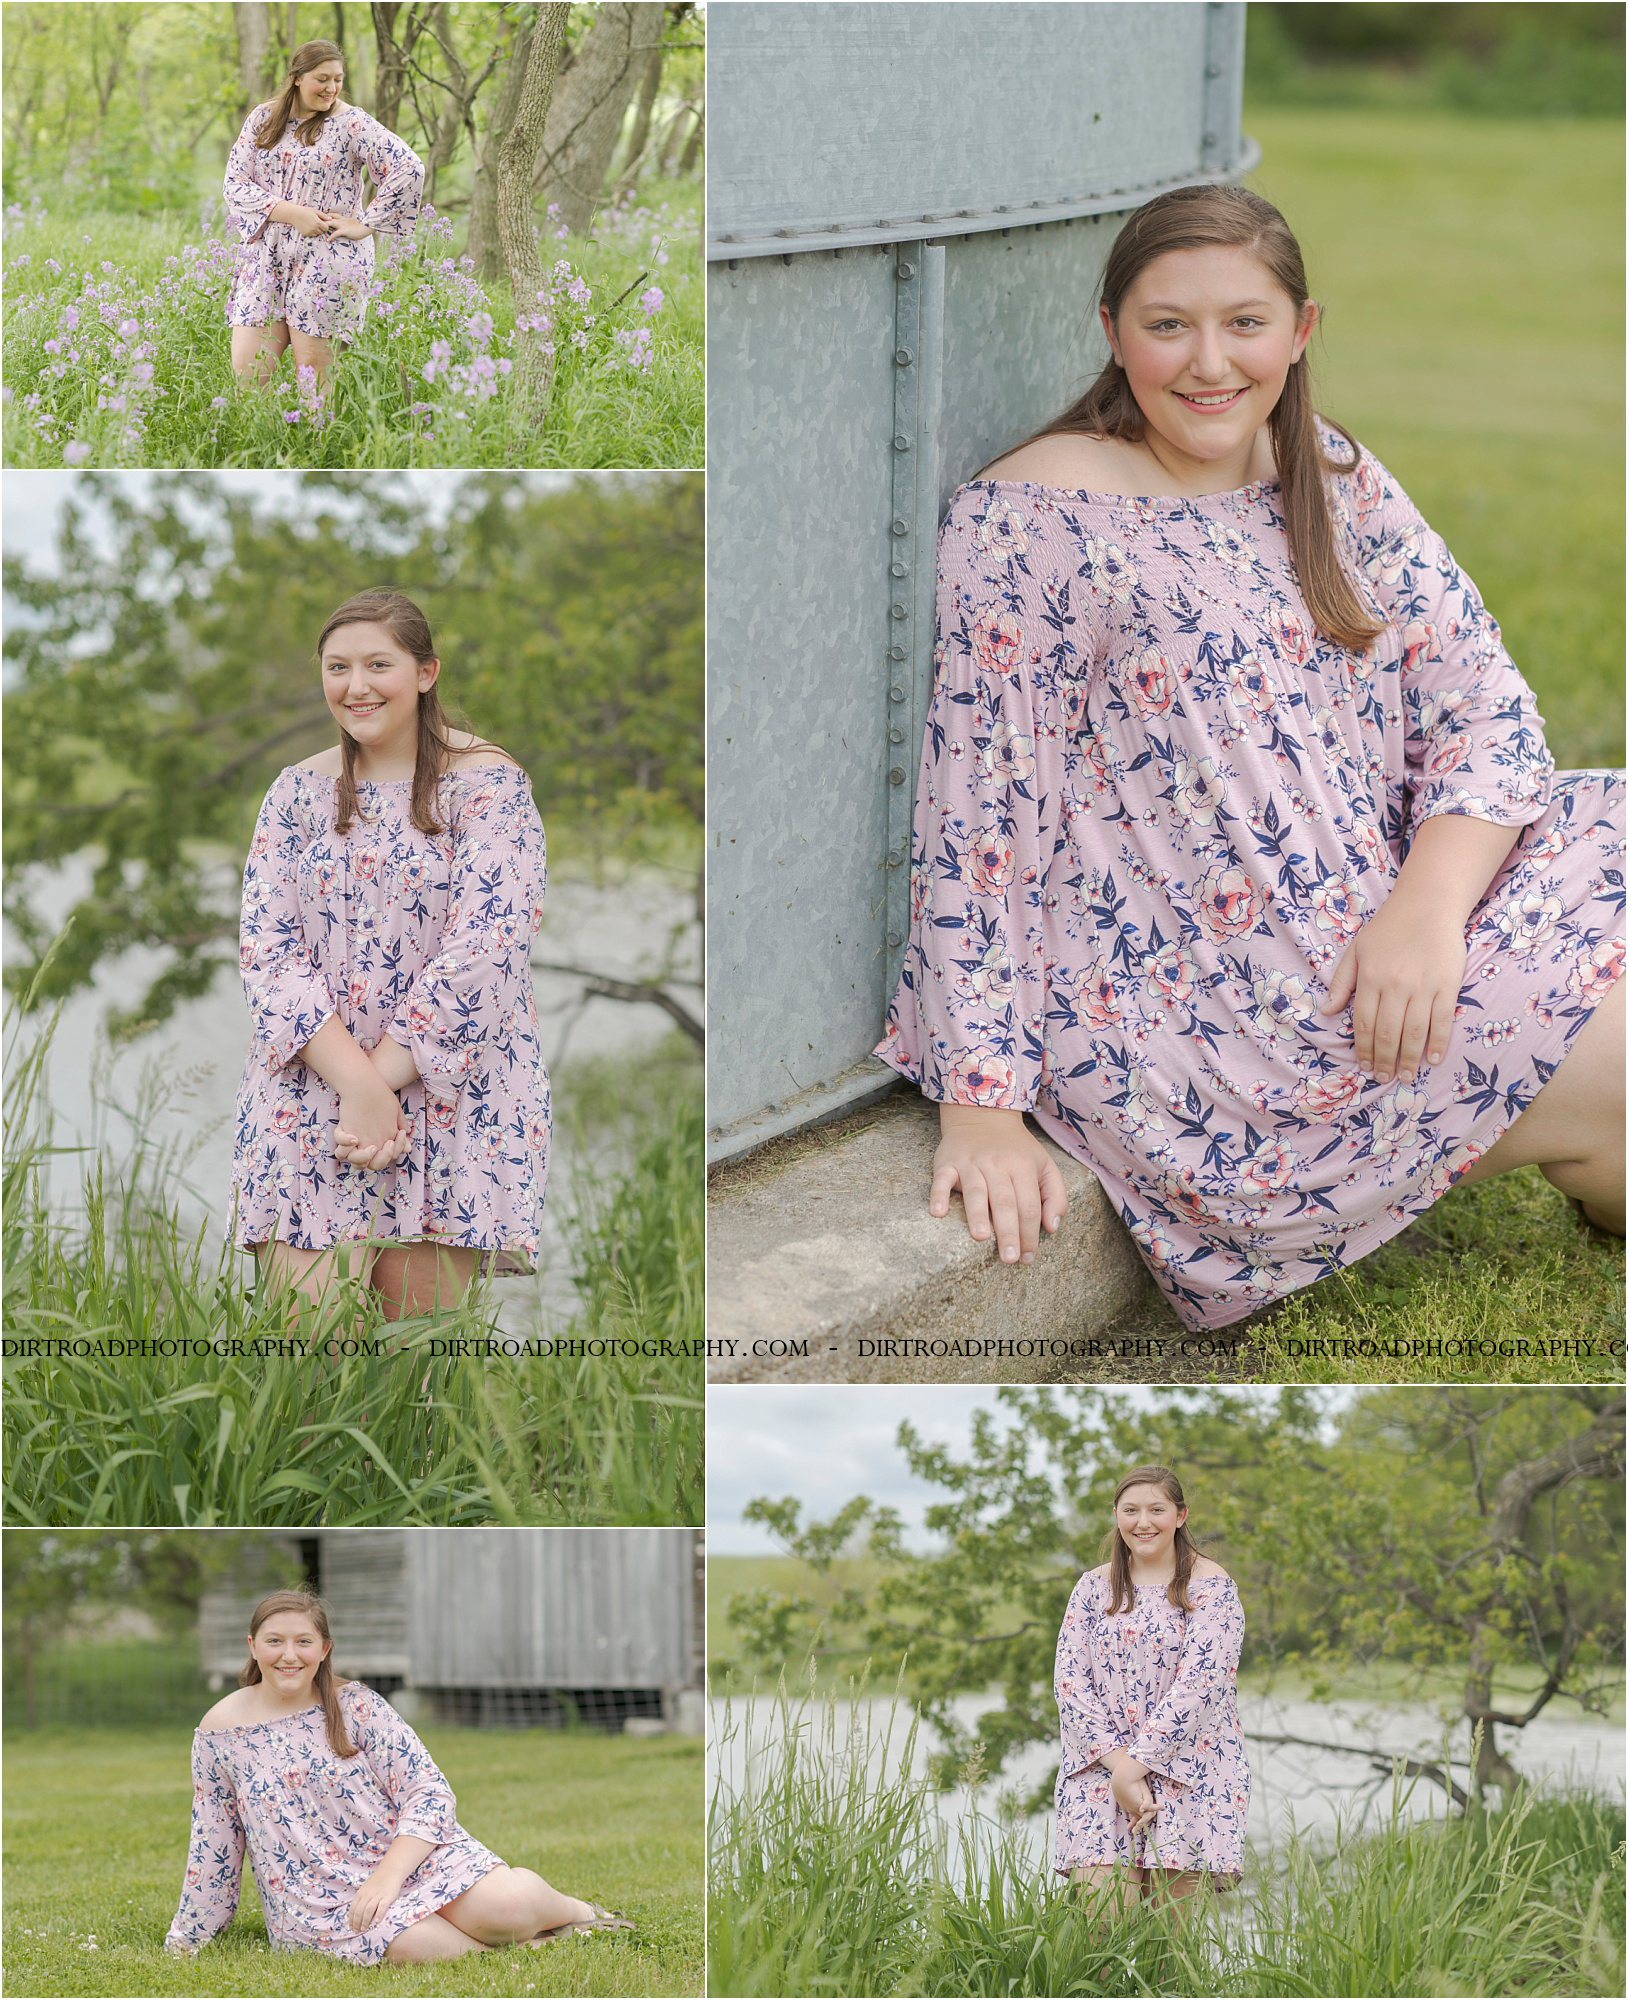 images of high school girl senior photos named lily zoubek of western nebraska who went to wilber-clatonia high school in nebraska and is part of the class of 2020. photos were taken near swanton nebraska in saline county. photo includes purple spring flowers at sunset with girl in pink floral dress standing in tall natural grass with trees surrounding her. teen has long brown hair. photos taken at sunset near water and farm pond. photographer is kelsey homolka nerud of wilber nebraska who specializes in high school senior photography and senior pictures.